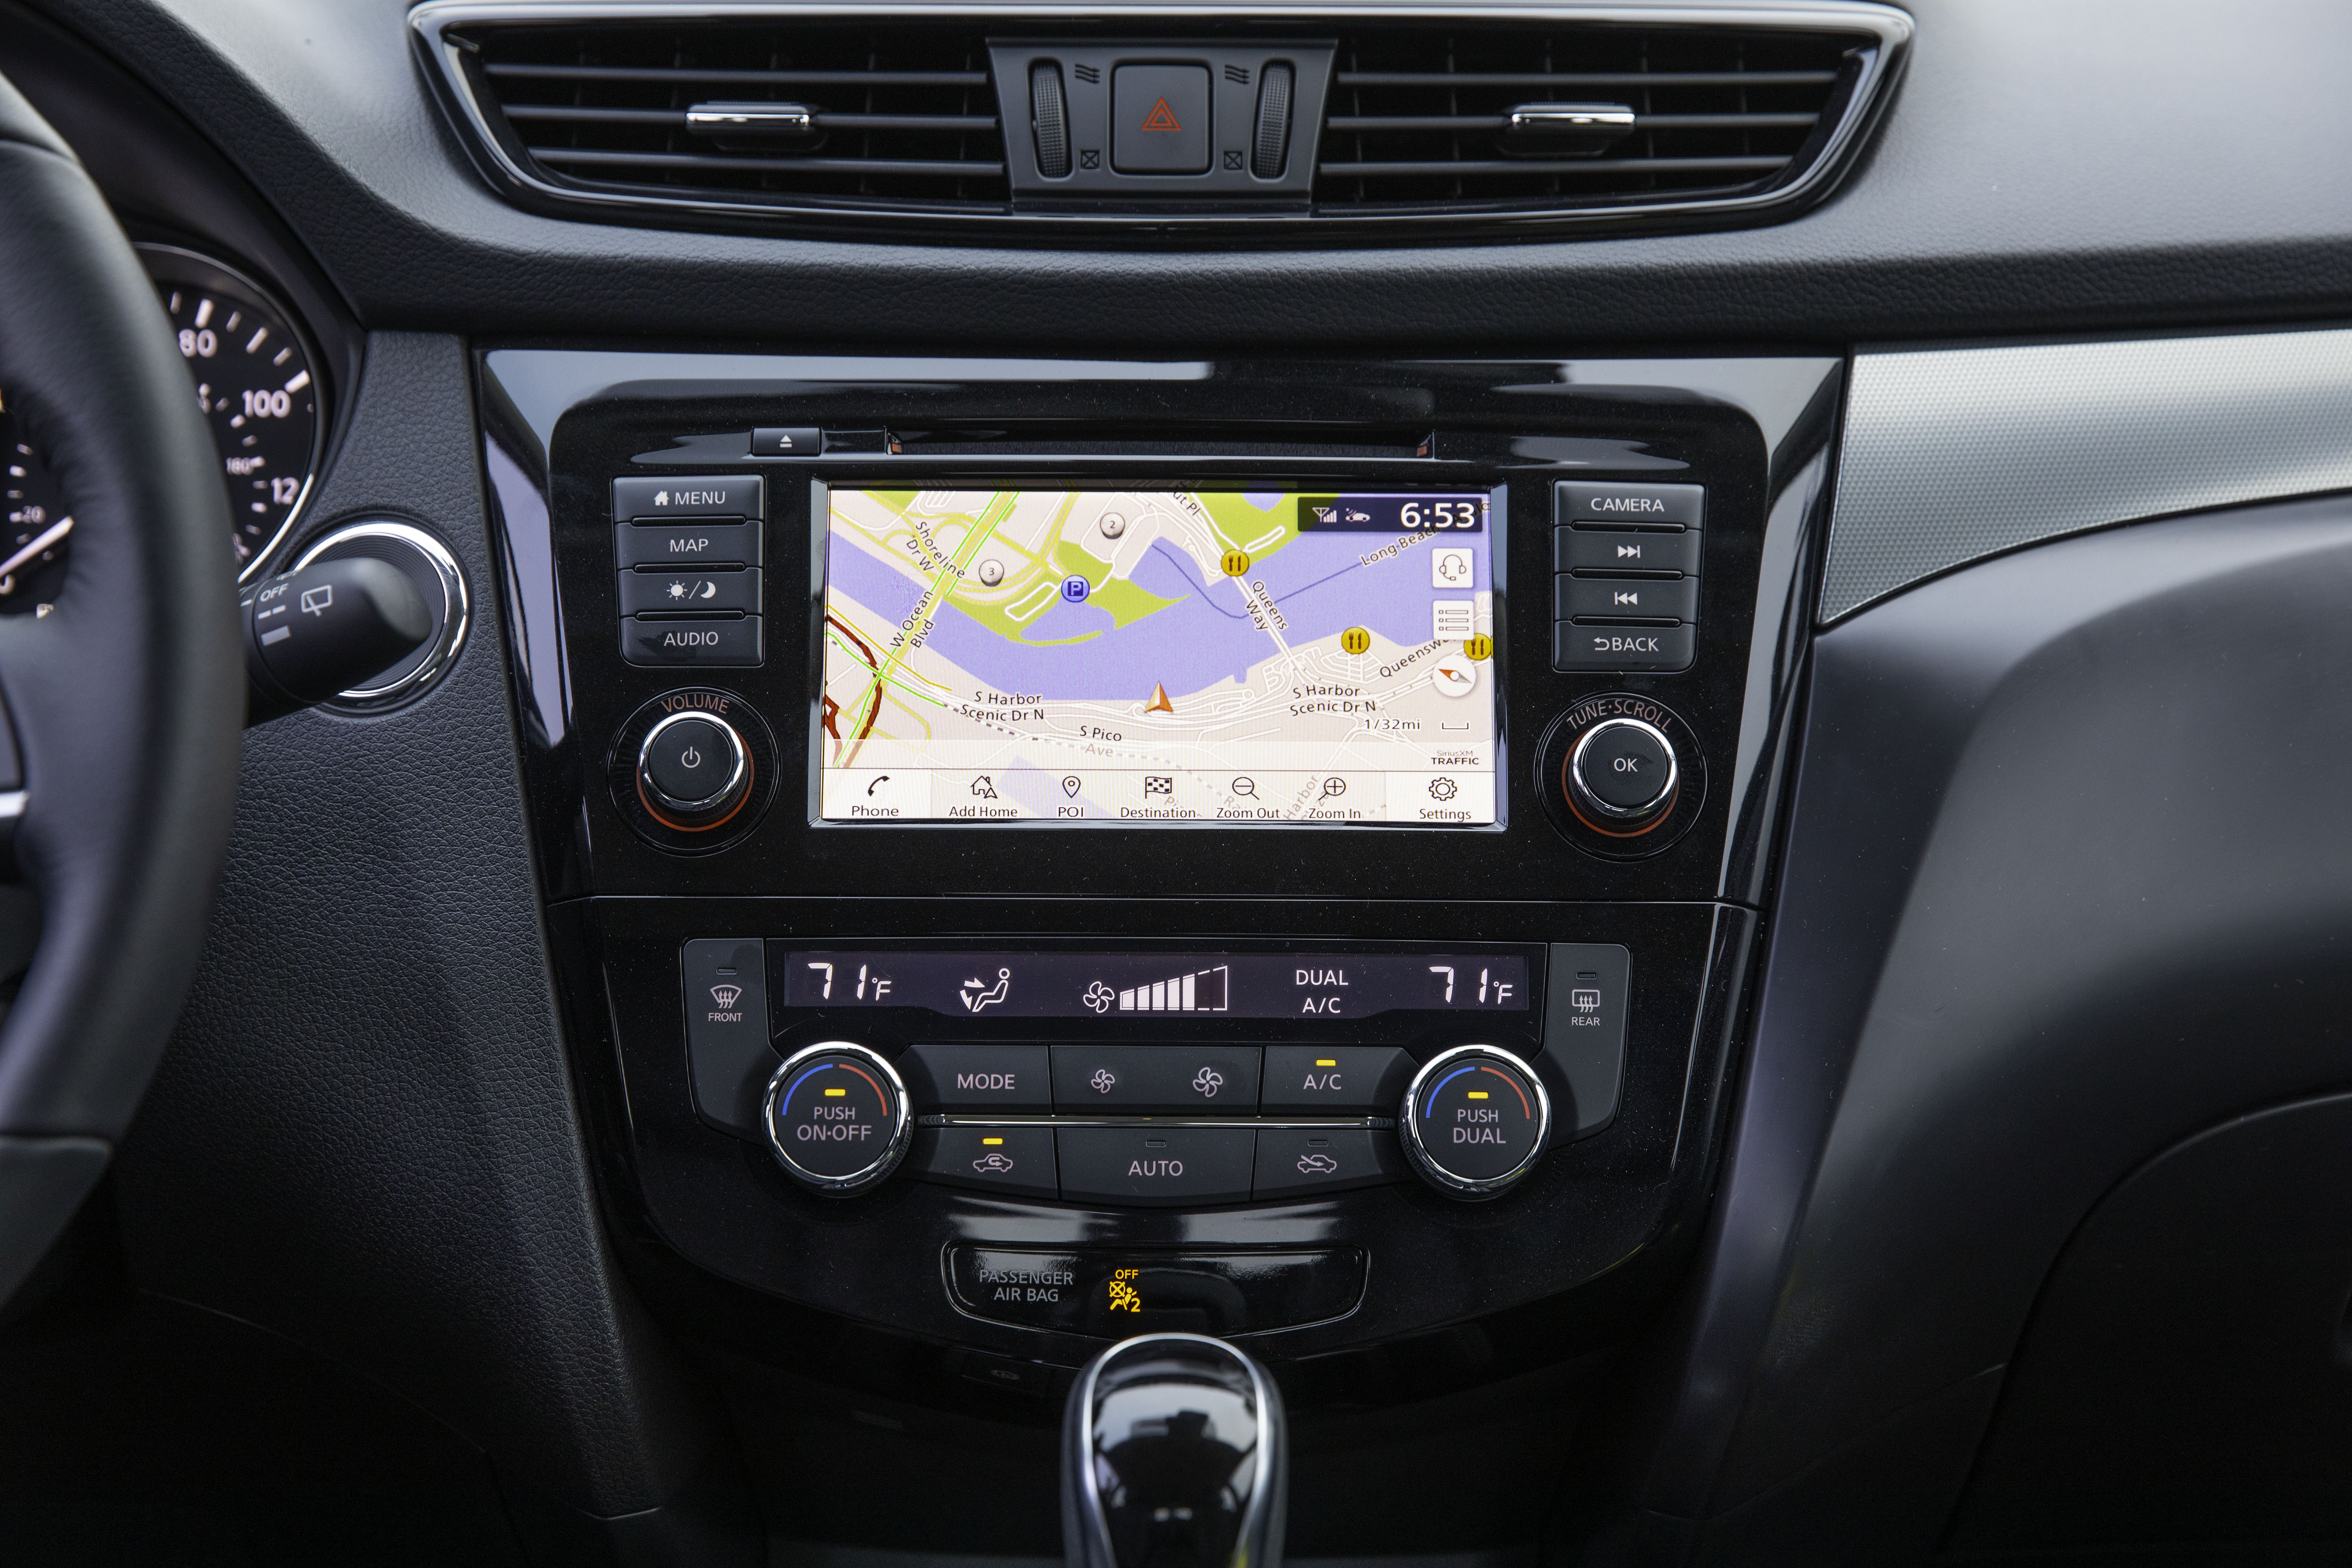 Interior image of the 2020 Nissan Qashqai